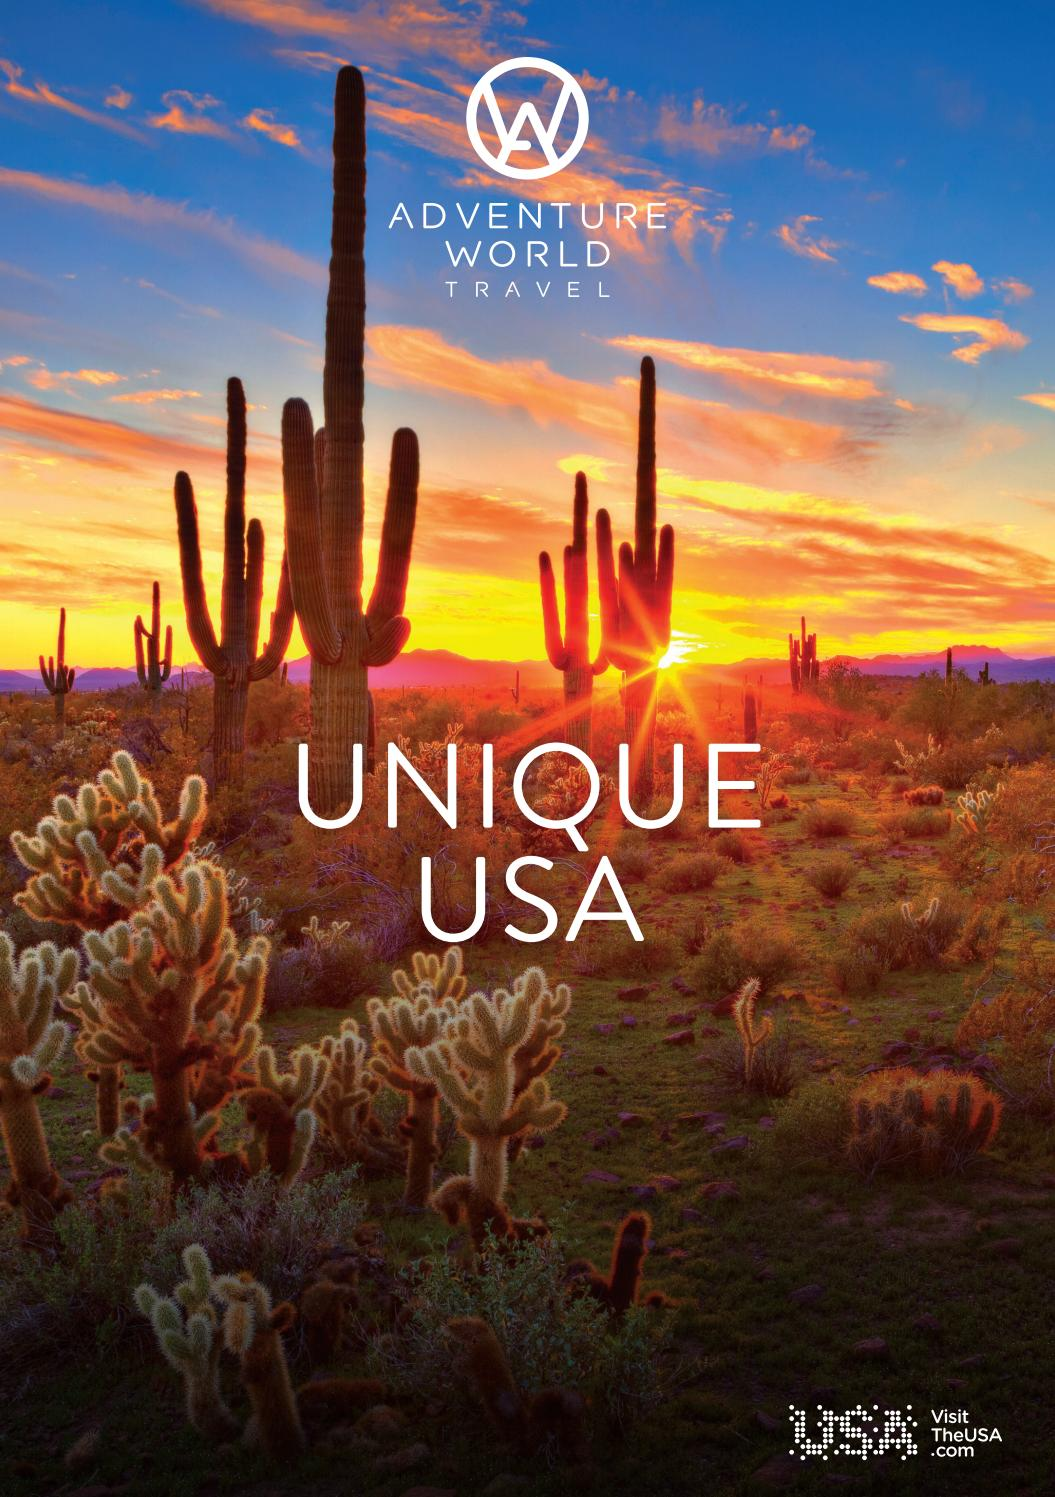 Your Guide to Unique USA